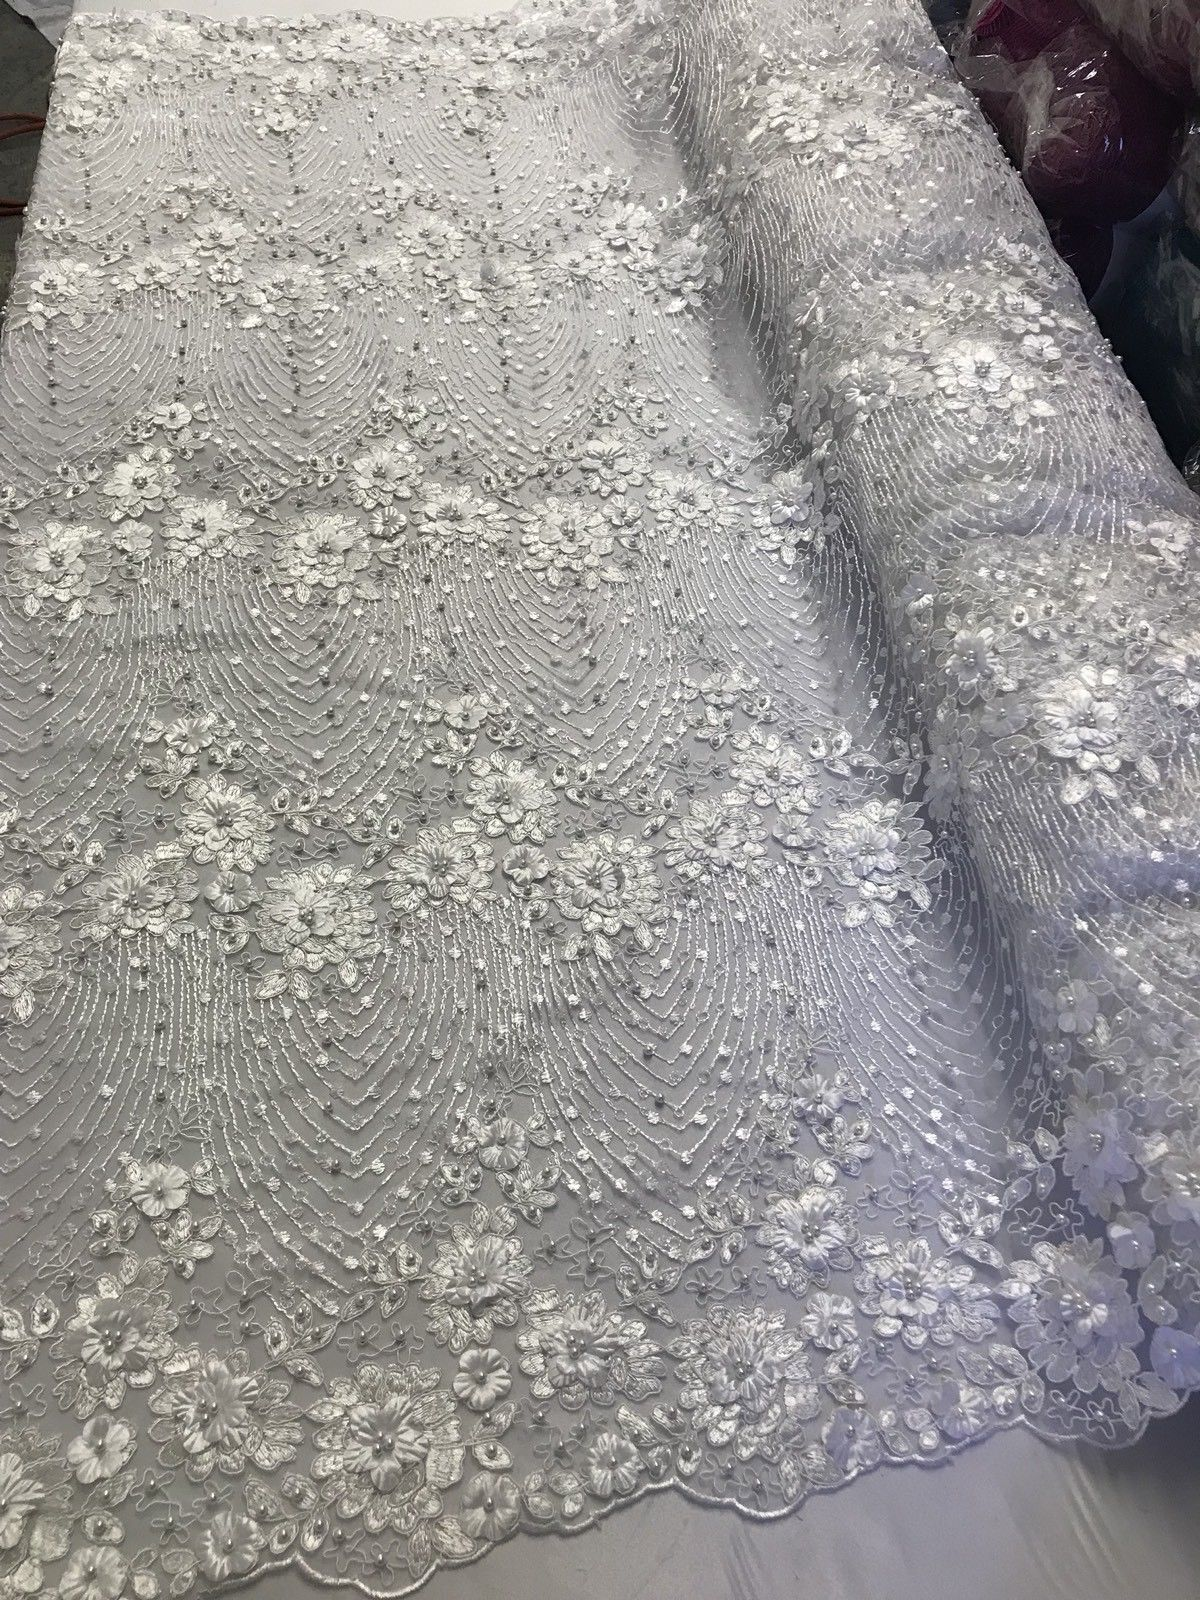 Bridal Flower Embroidered Floral Mesh & Pearls By The Yard Lace Fabric White - KINGDOM OF FABRICS